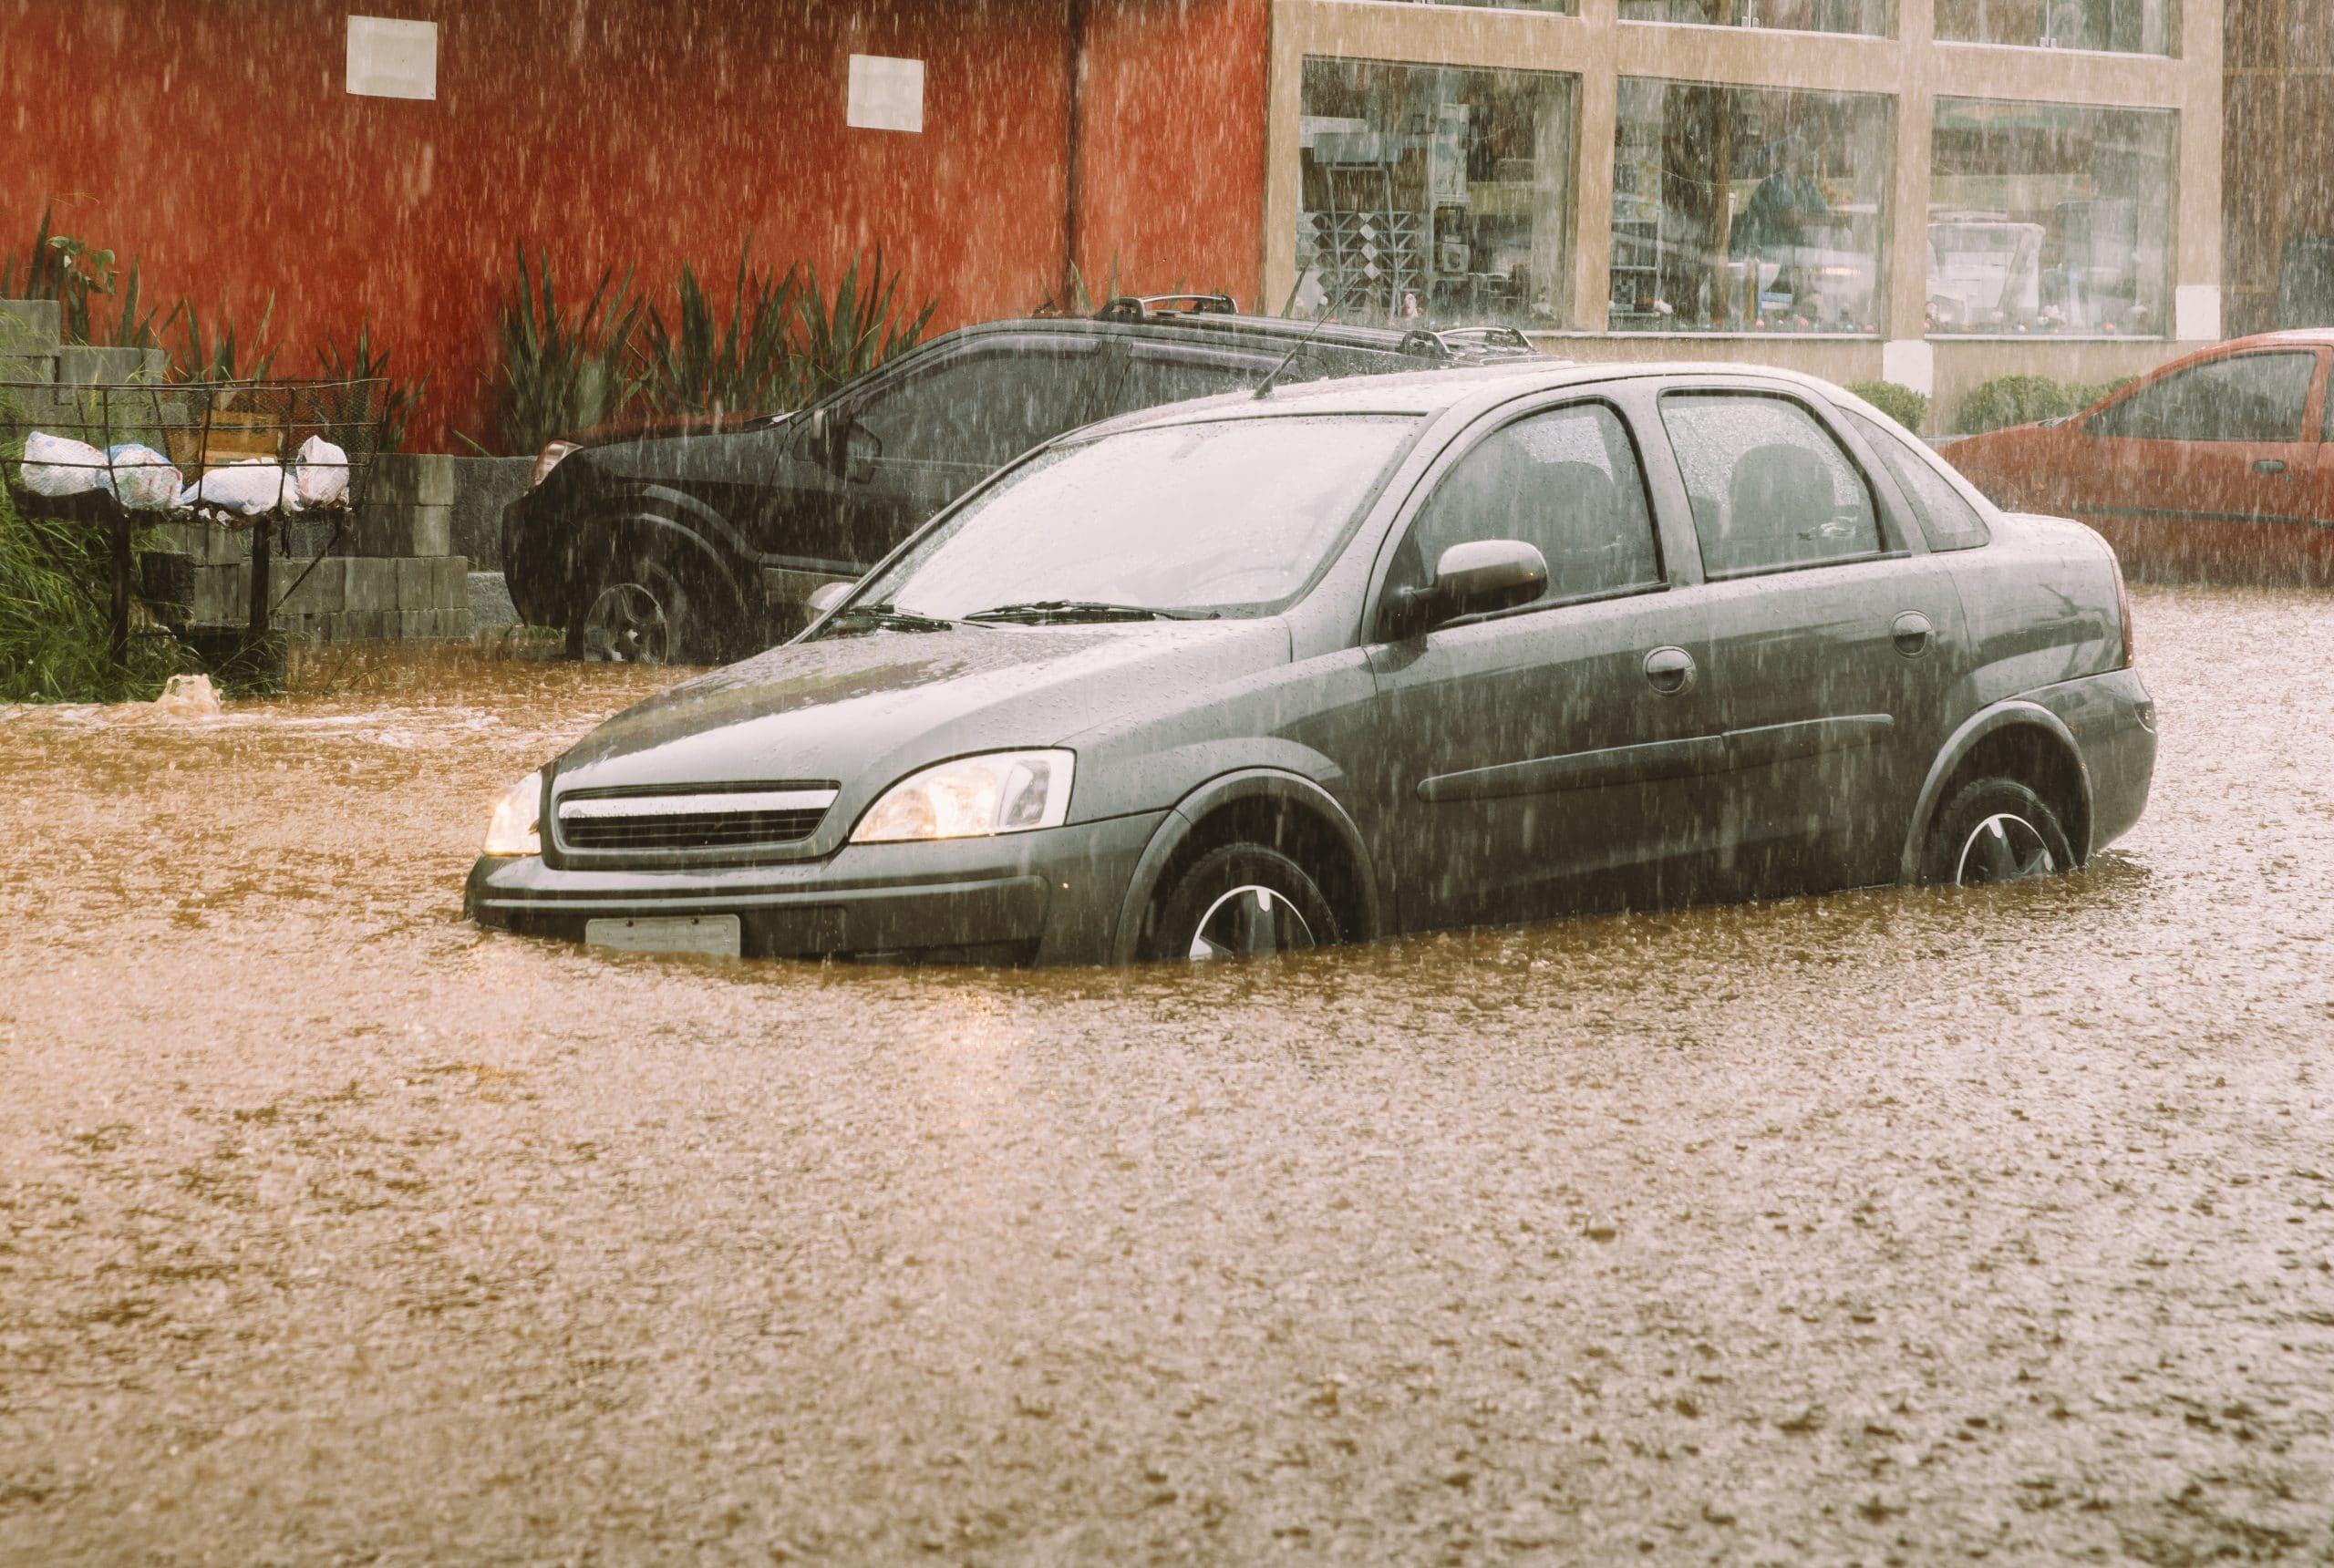 small car sinking in flood water while raining